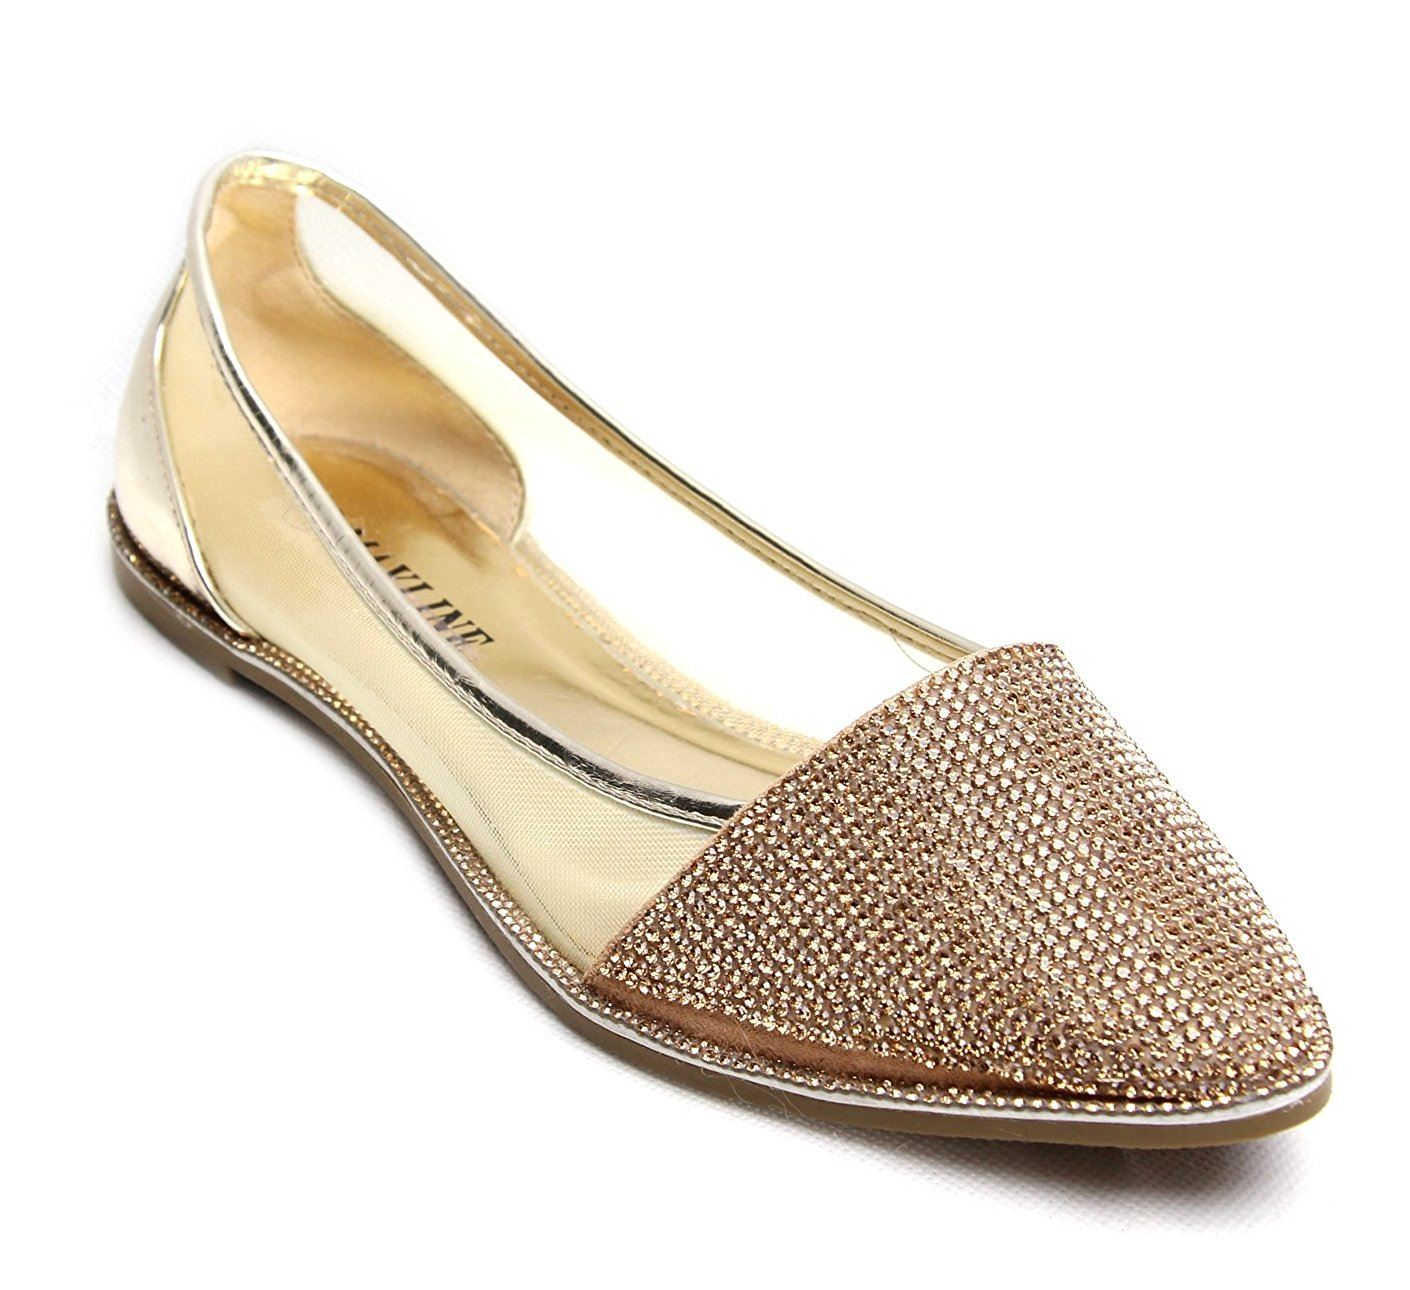 The collection of women's flat shoes at Office is packed with your go-to pumps, ballet shoes, loafers and more; perfect for getting you from A to B in style! So whether you've got a busy Monday coming up or you're planning a lazy day of shopping and brunch in fashionable comfort, you'll find the pair you're looking for right here.